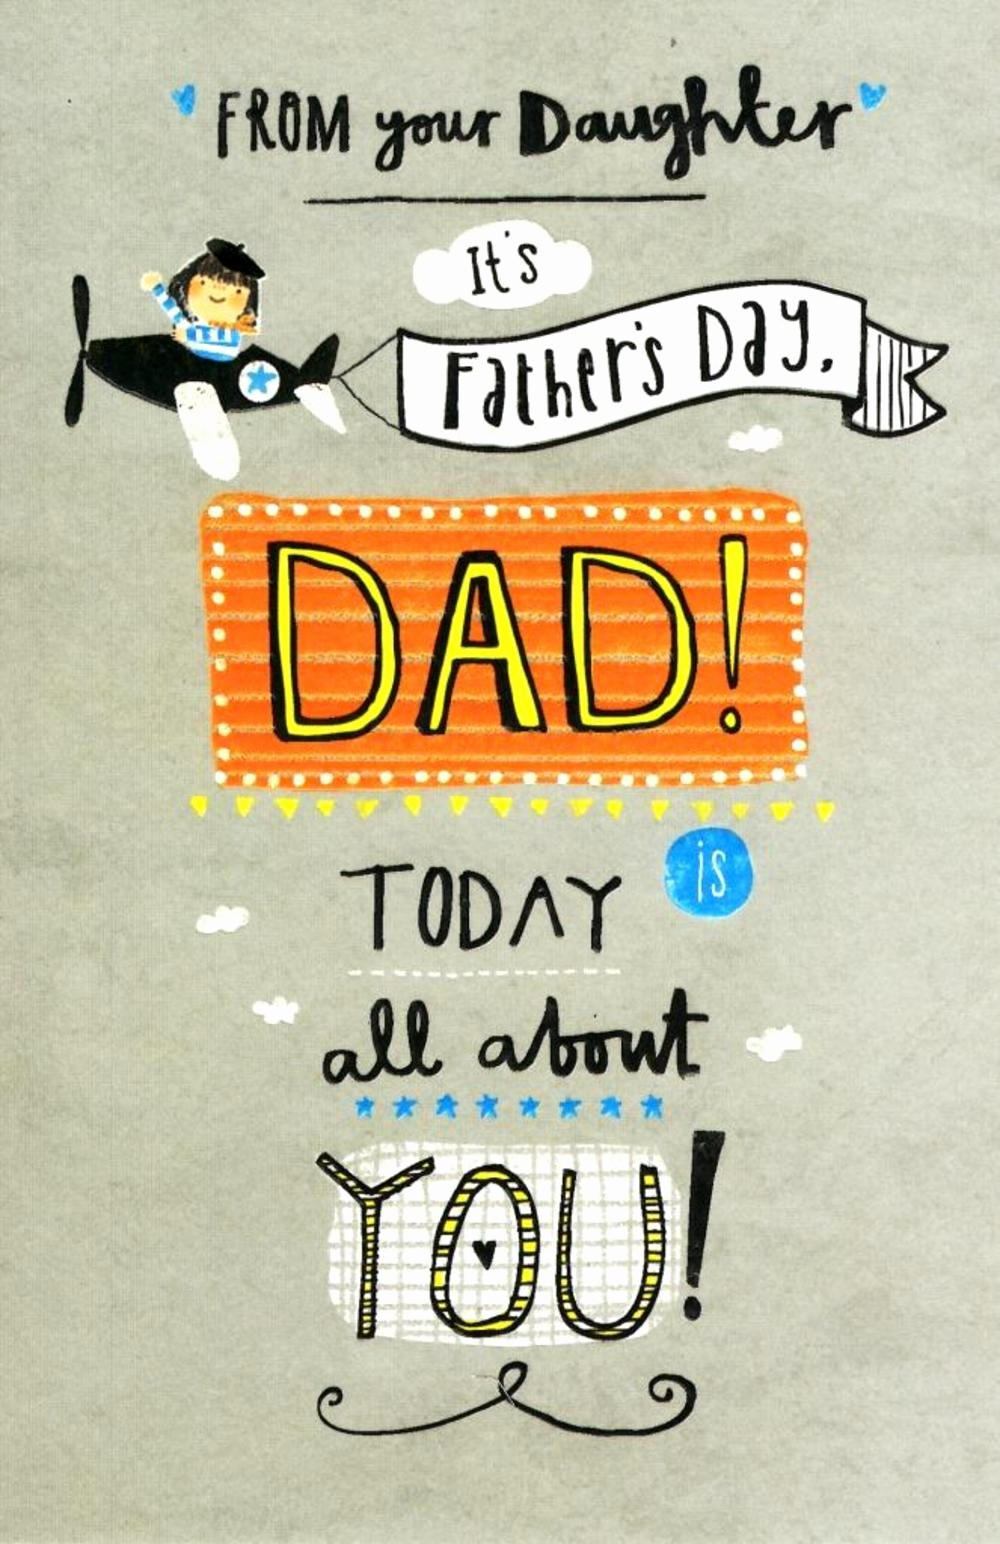 Fathers Day Card From Daughters Awesome Dad From Your Daughter Happy Father S Day Card